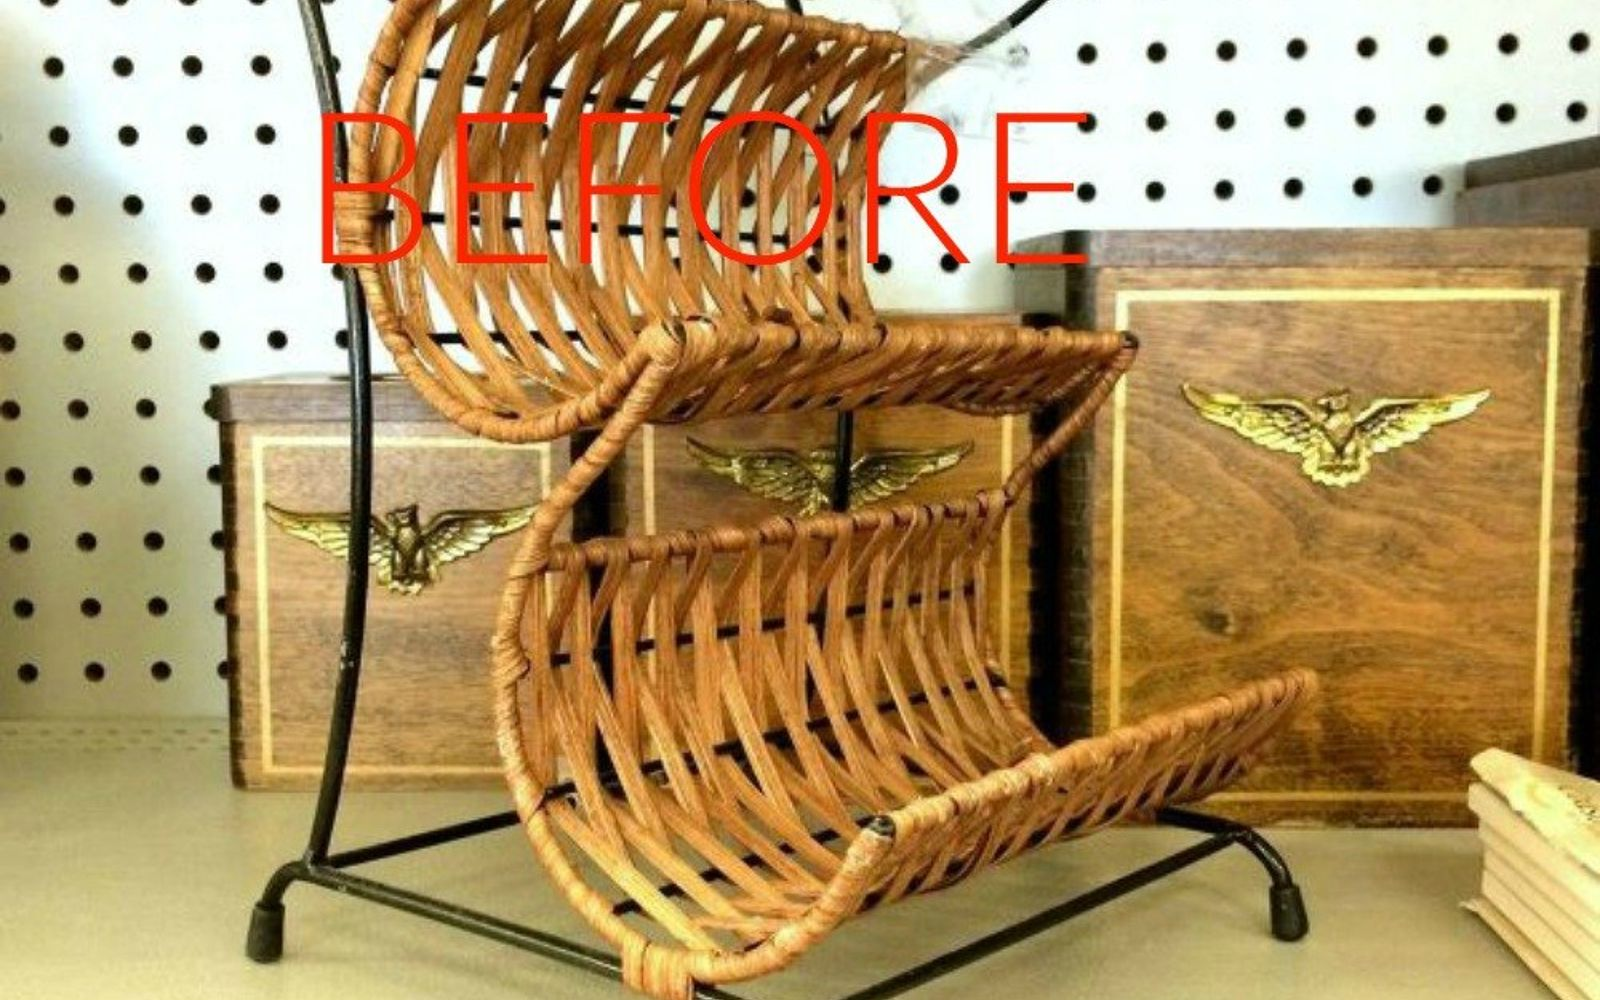 s make wicker trendy again with these brilliant ideas, painted furniture, Before A thrift store wine rack